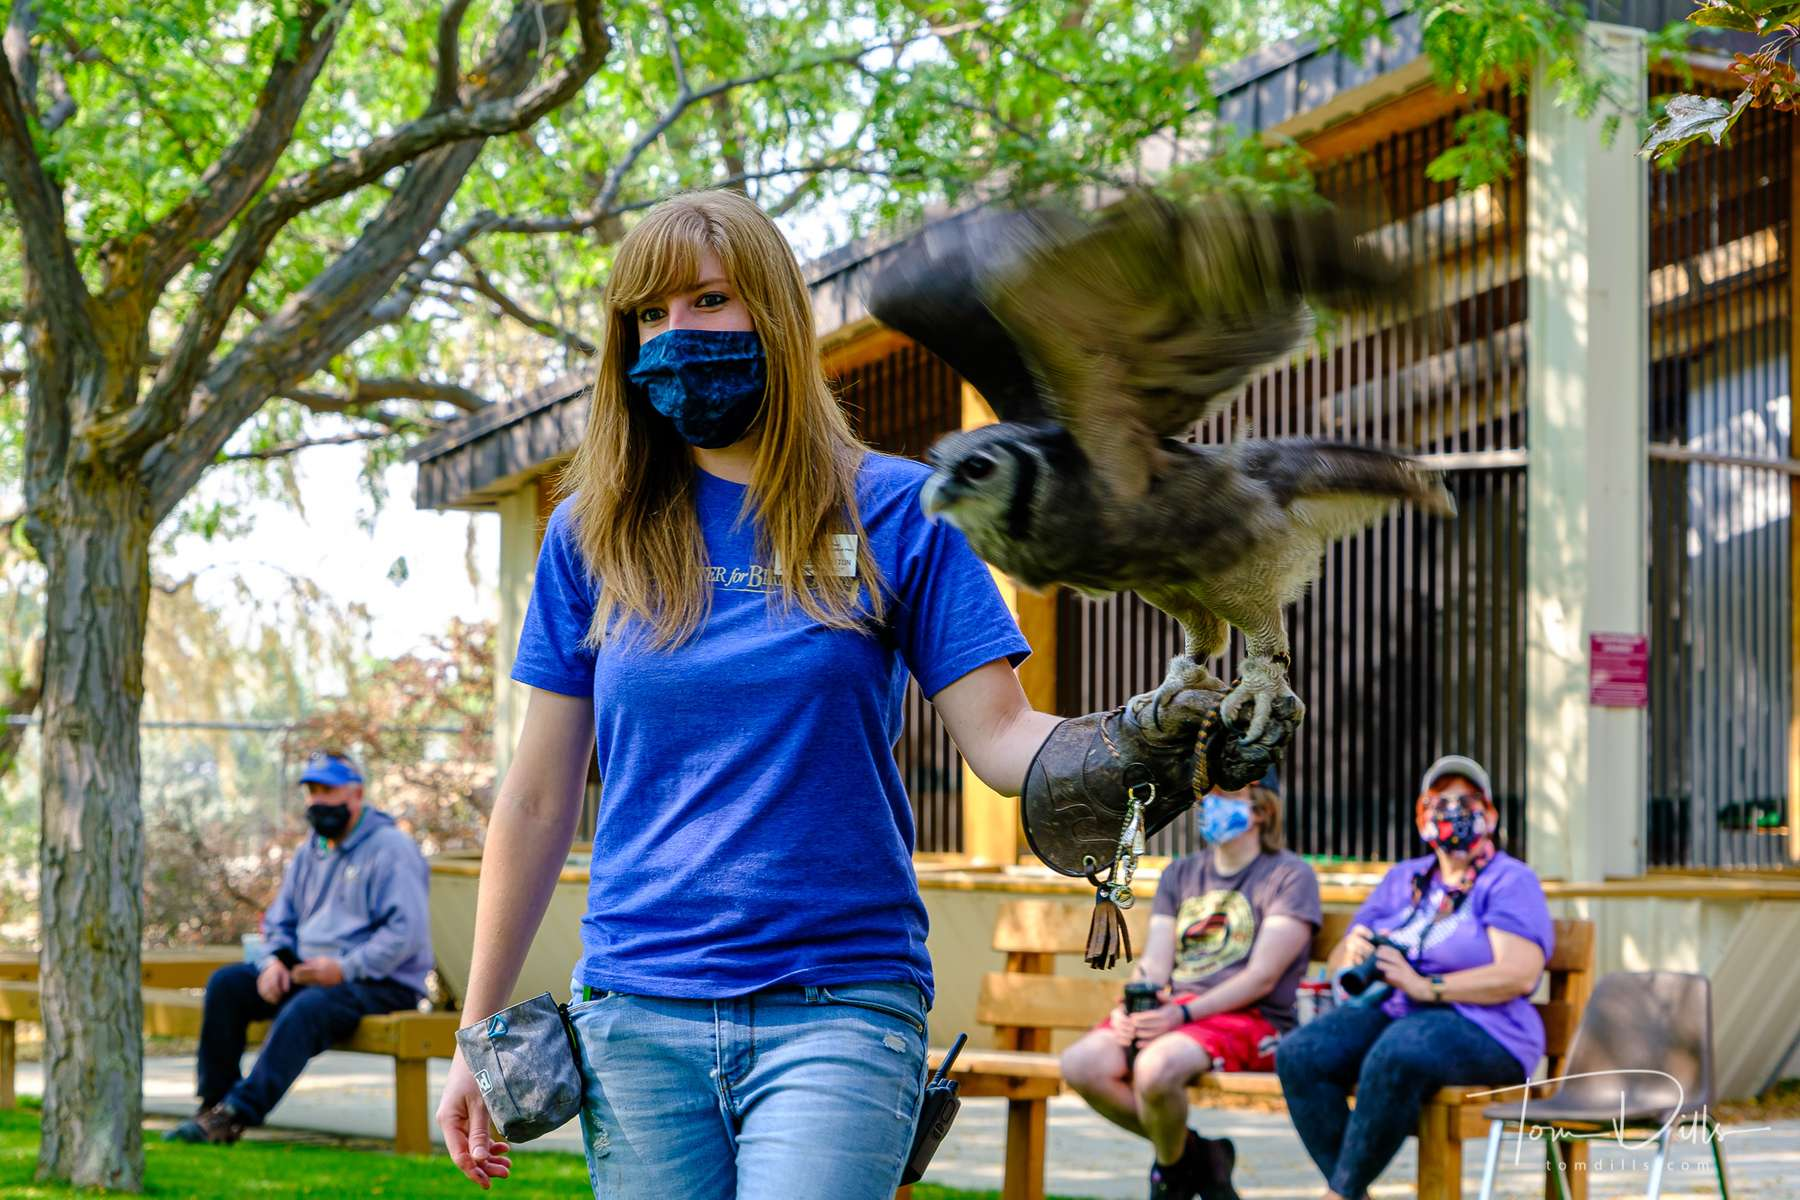 Flight demonstration with Oliver the Verreaux's Eagle-owl at the World Center for Birds of Prey in Boise, Idaho